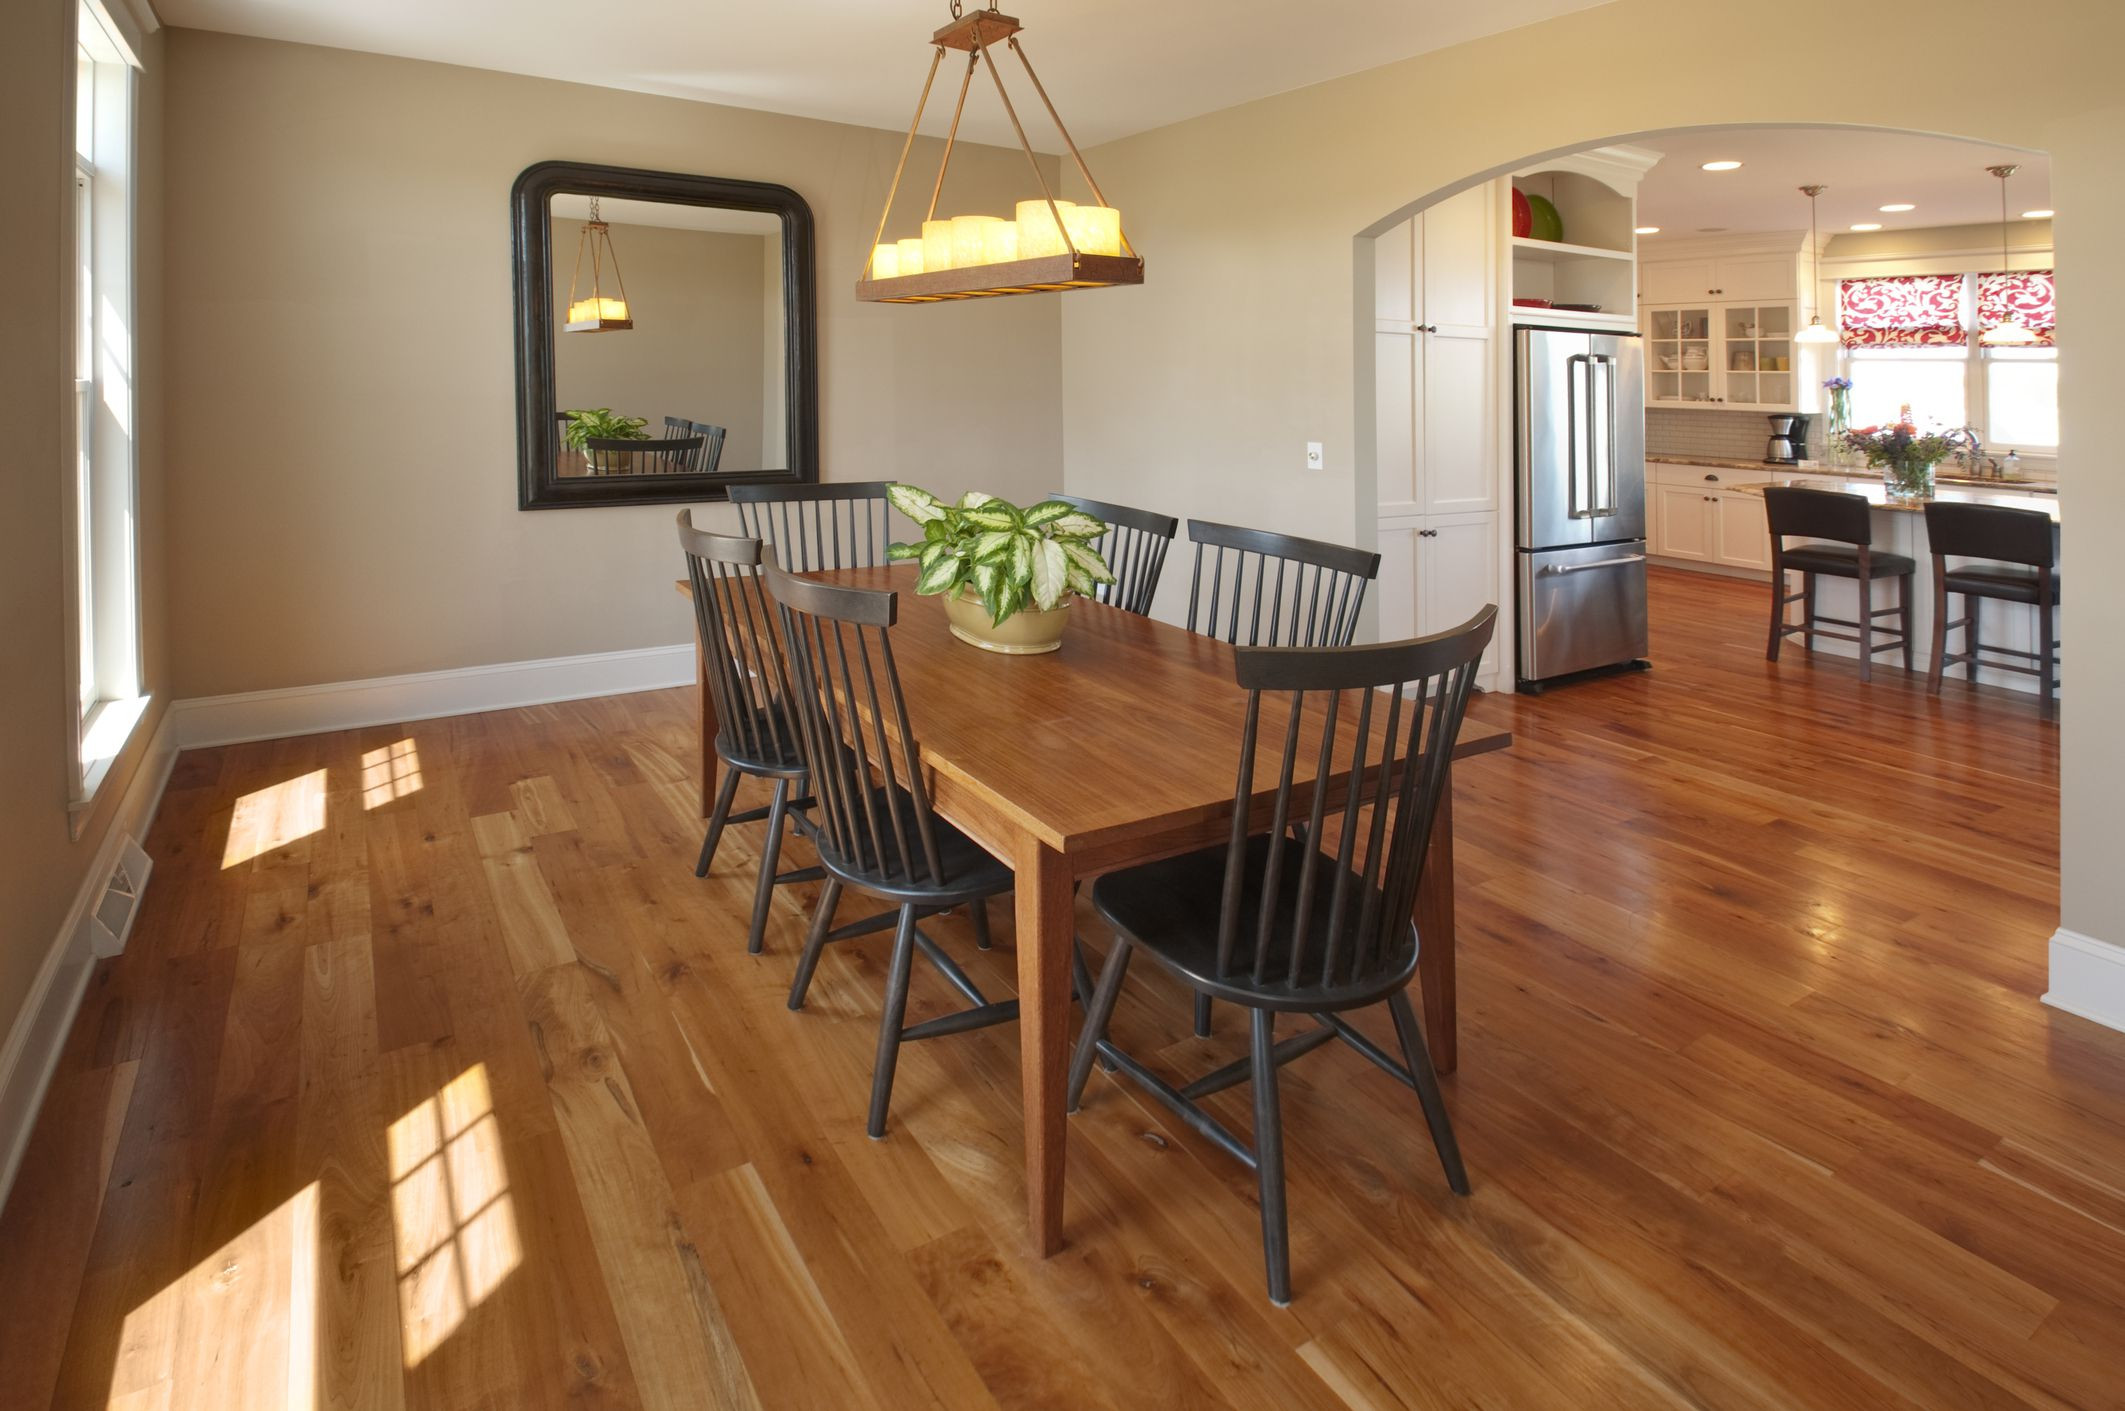 Hardwood Floor Refinishing Spokane Of A Beginners Overview Of Hardwood Flooring for Hardwood 02 58f6d0a53df78ca1599e5b0d